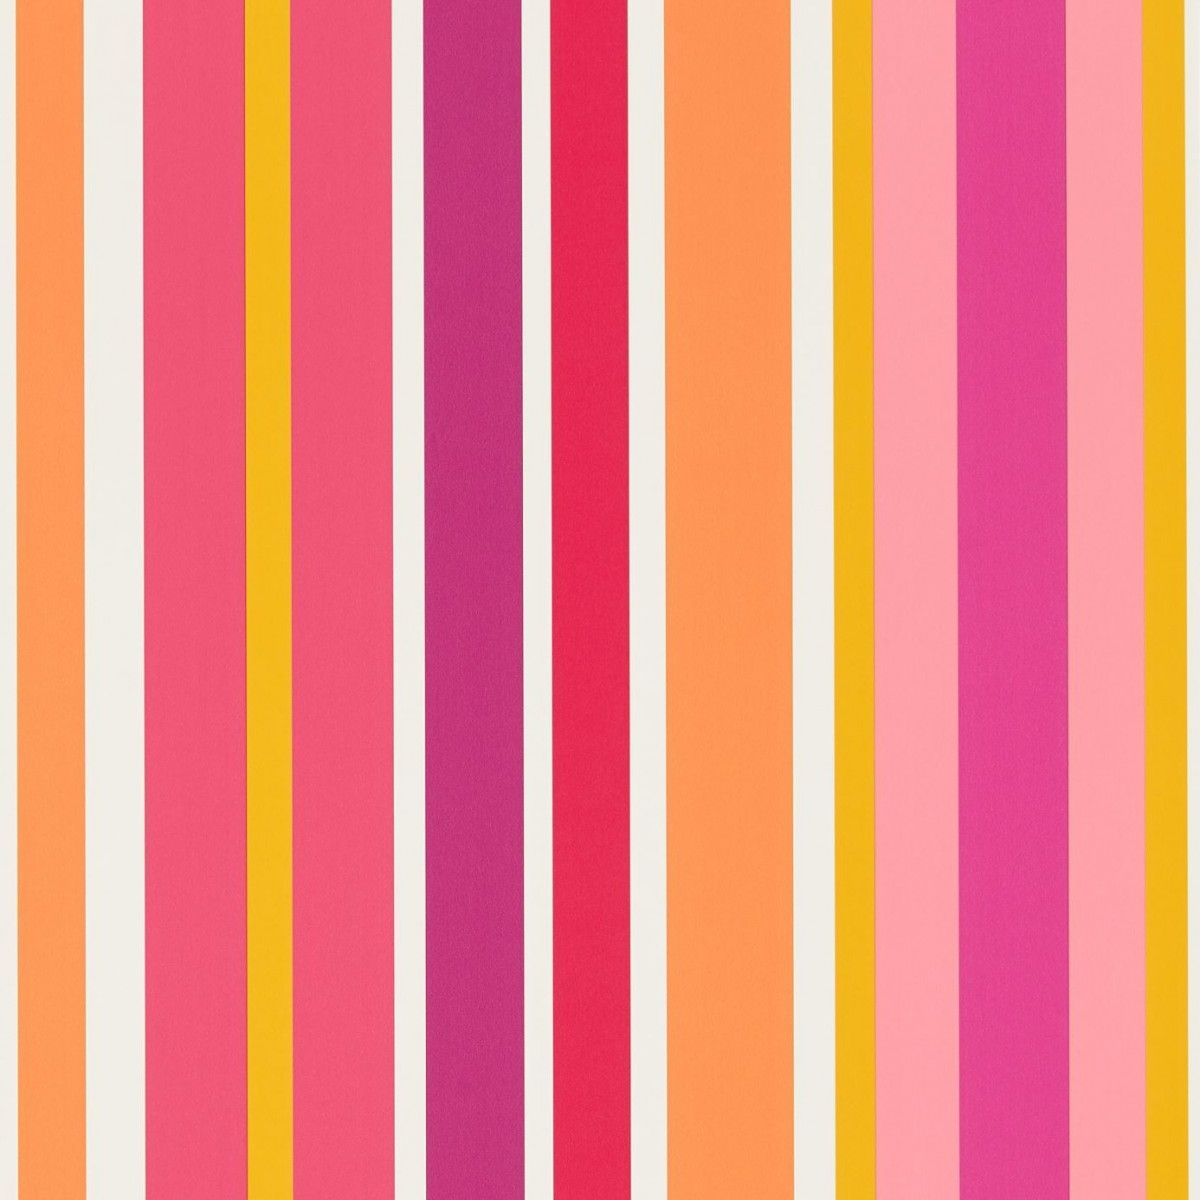 Pink and orange striped walls